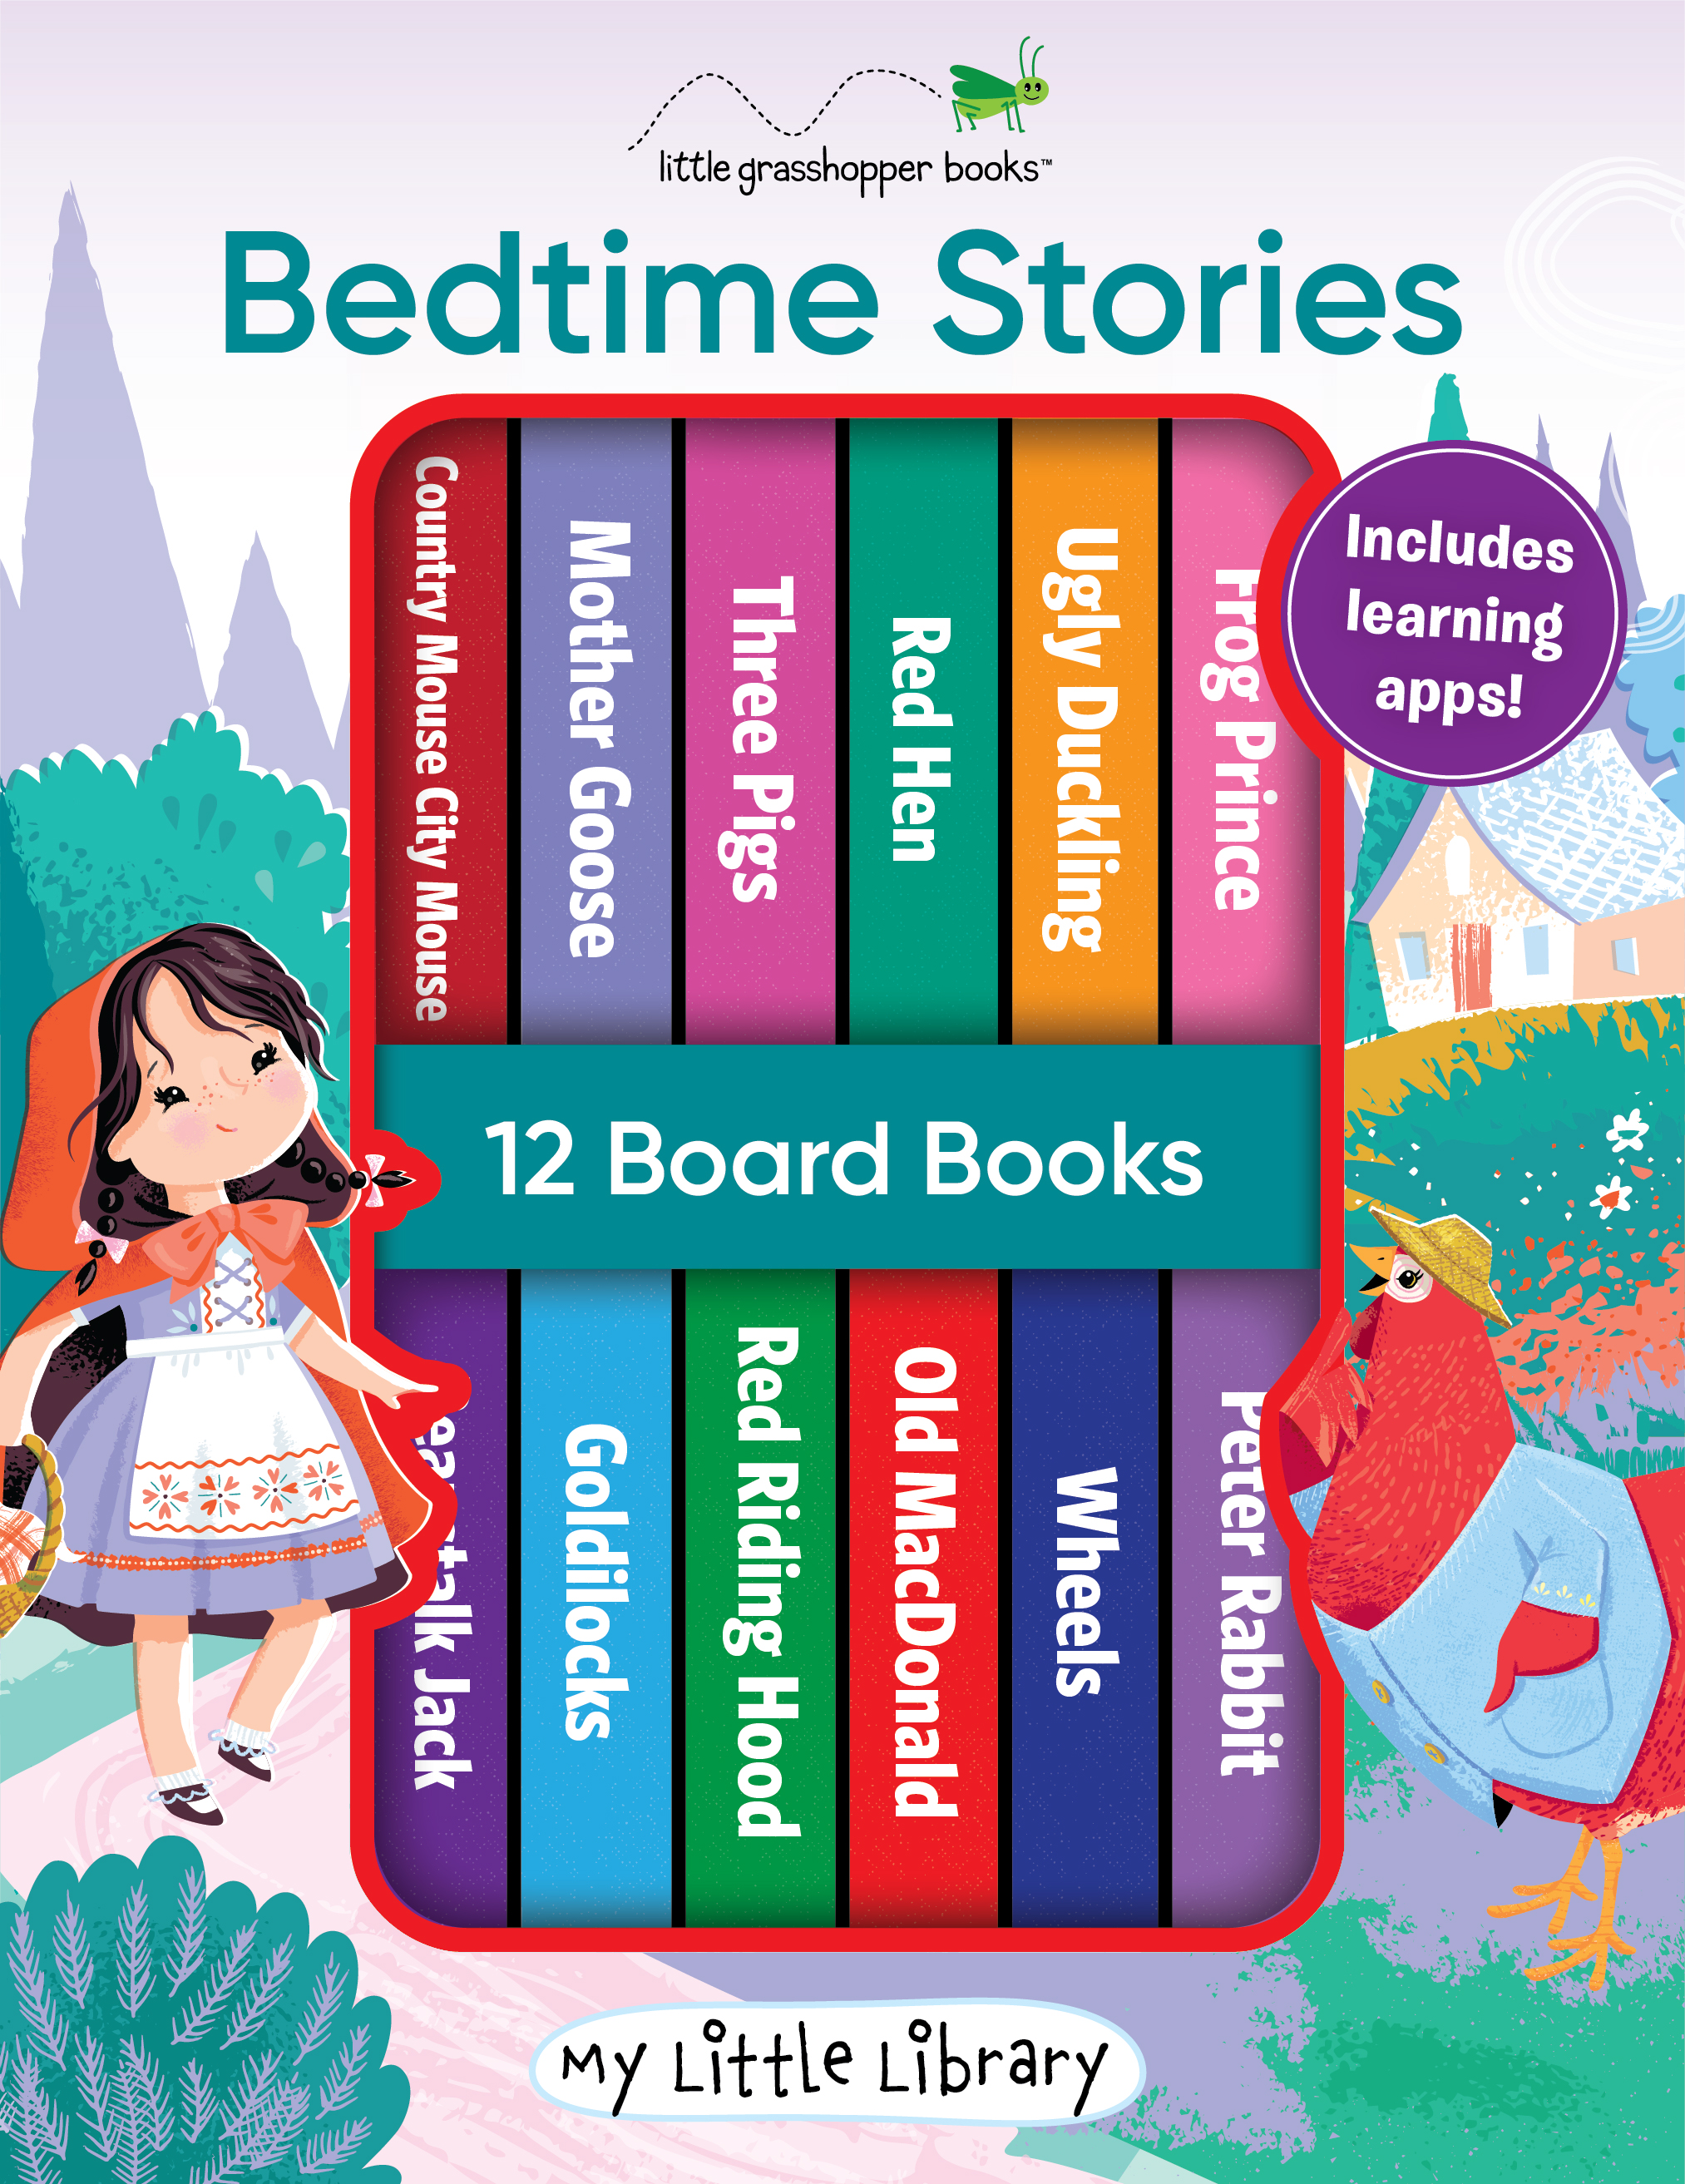 My Little Library: Bedtime Stories (12 Board Books 3 Downloadable Apps!)